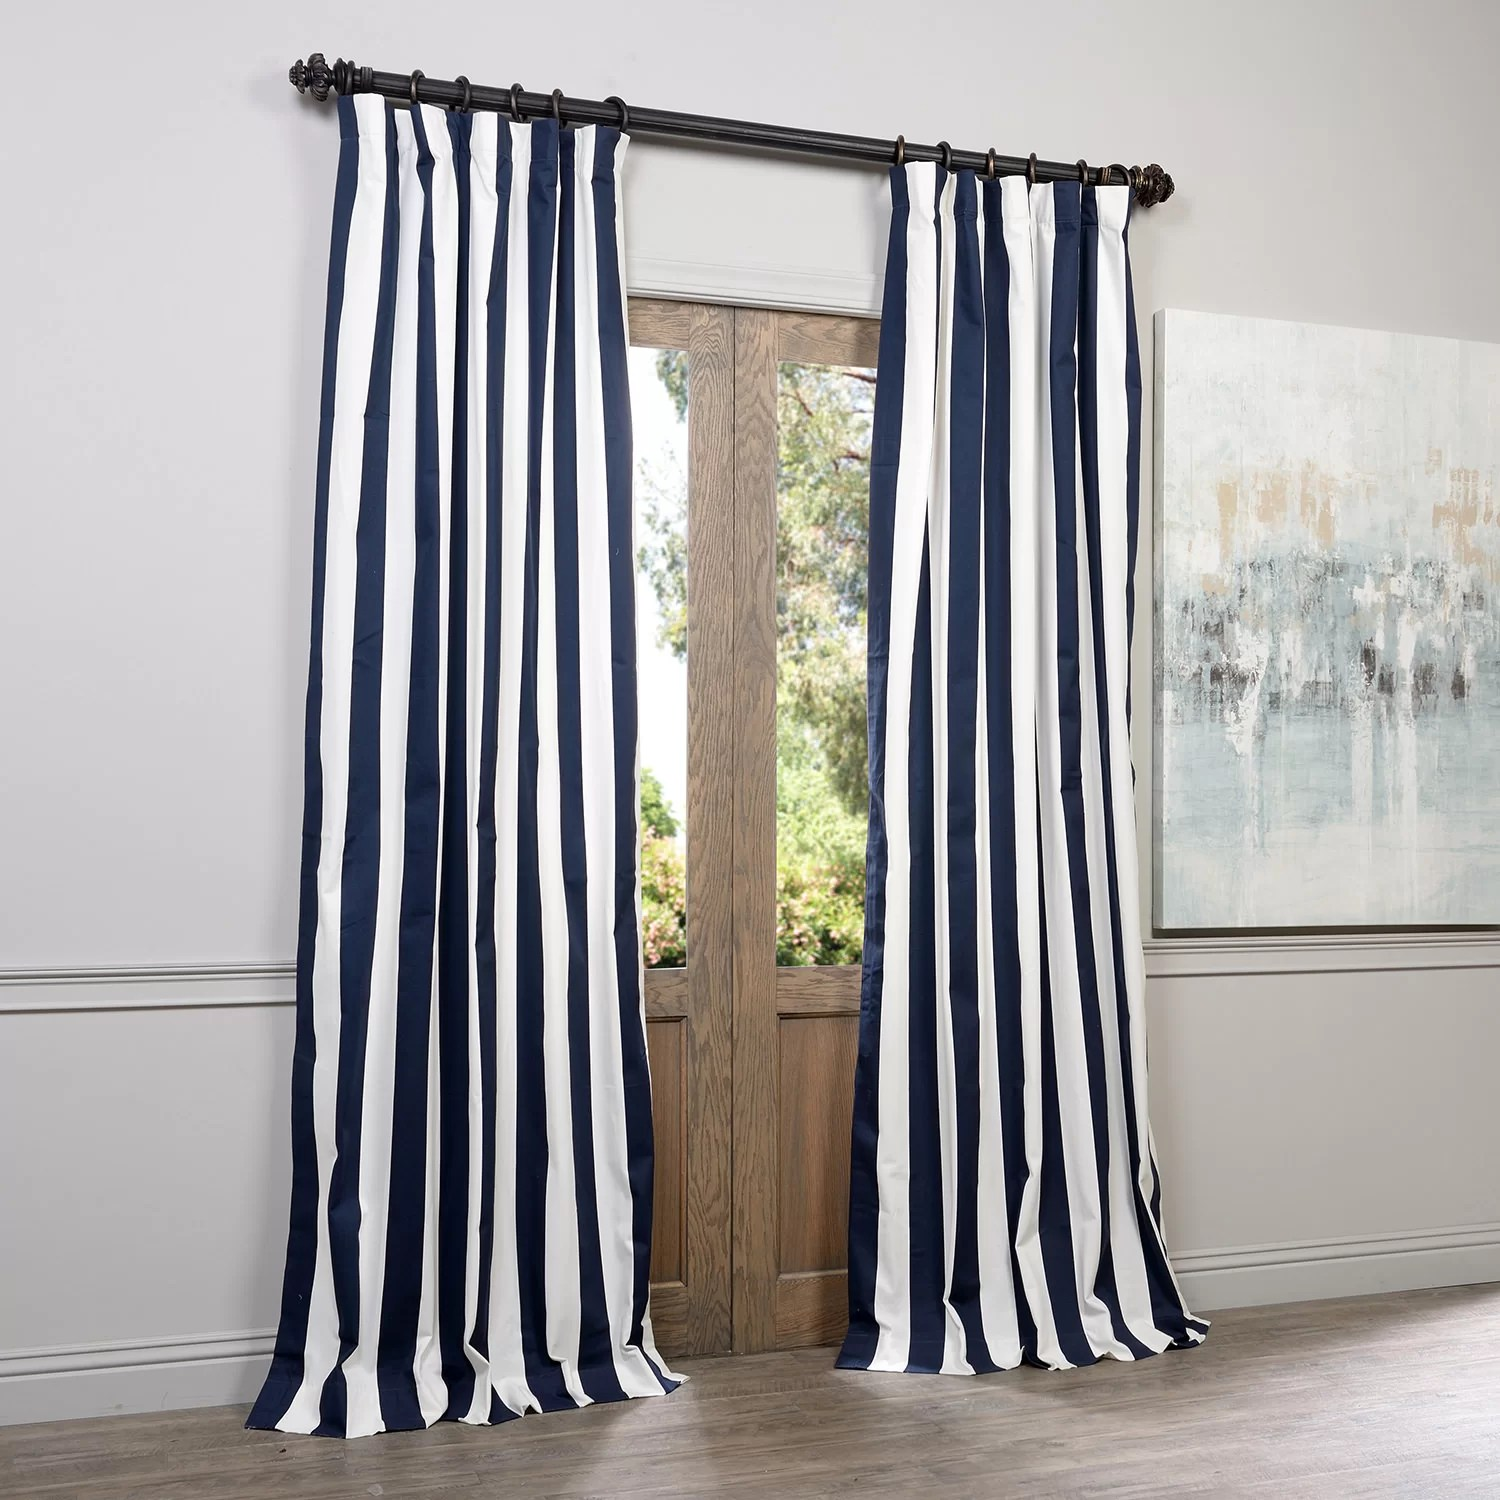 outdoor patio curtains sale ideas about patio curtains onoutdoor patio curtains drapes sale amazing bedroom living room